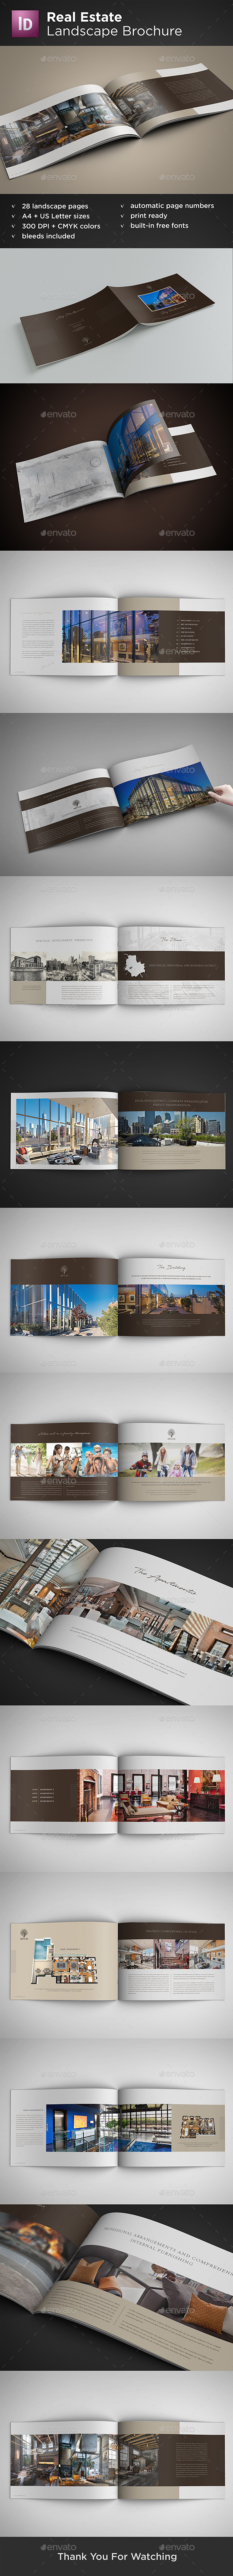 Real Estate Landscape Brochure - Catalogs Brochures